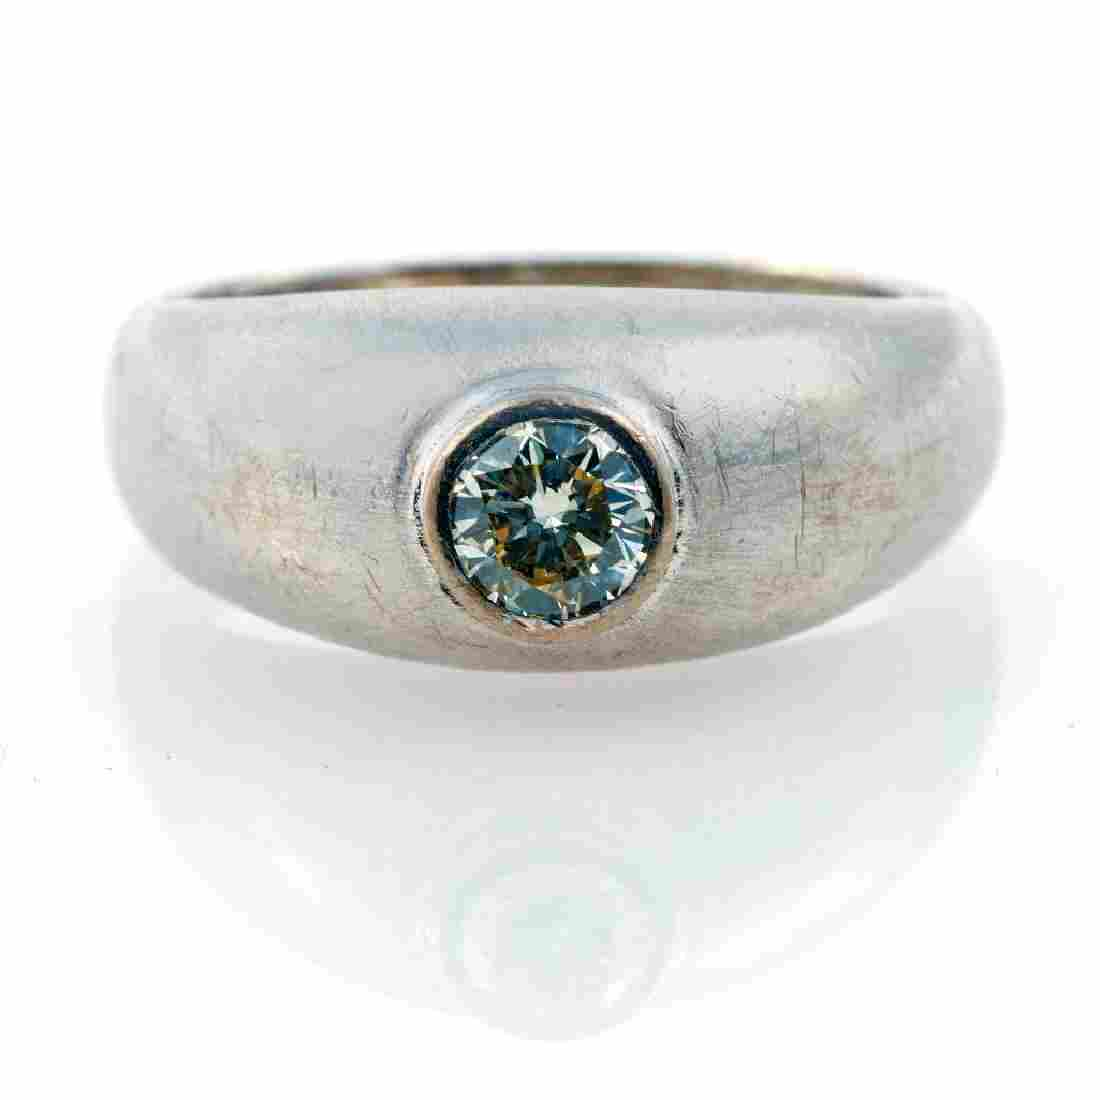 Diamond and 18k white gold solitaire ring